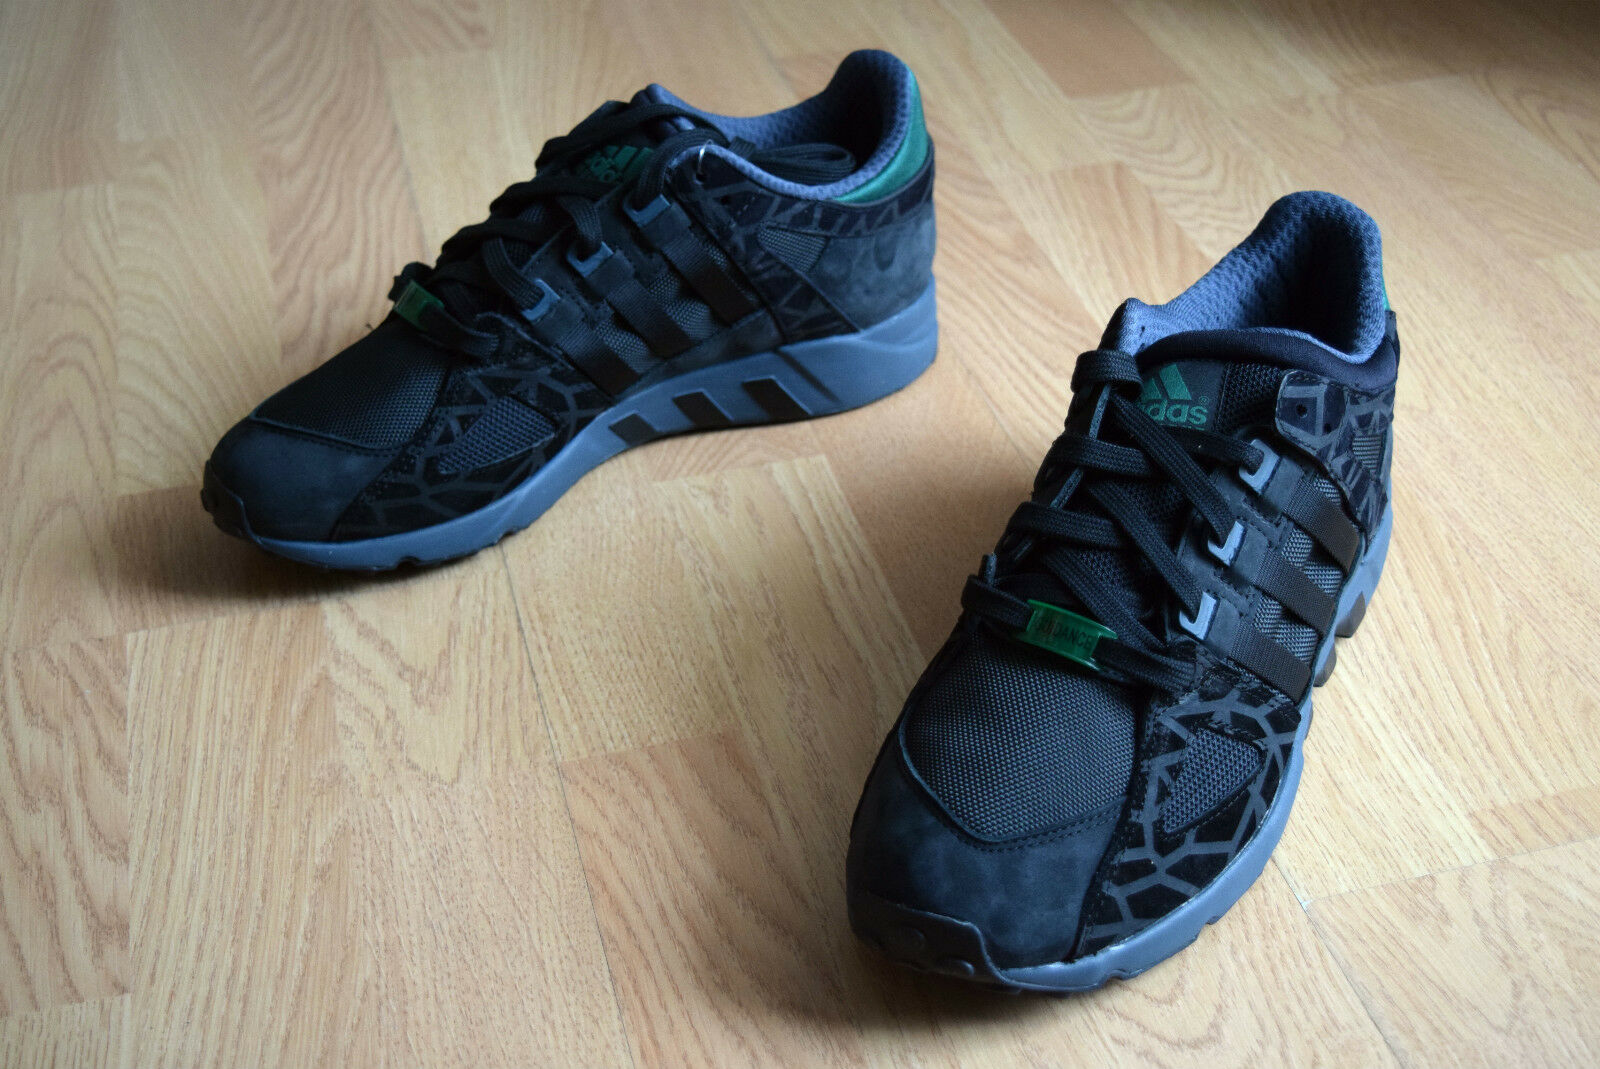 Adidas EquipHommes t GUIDANCE Running 41 42 45 43 44 45 42 46 b40933 Consortium Support 532c44